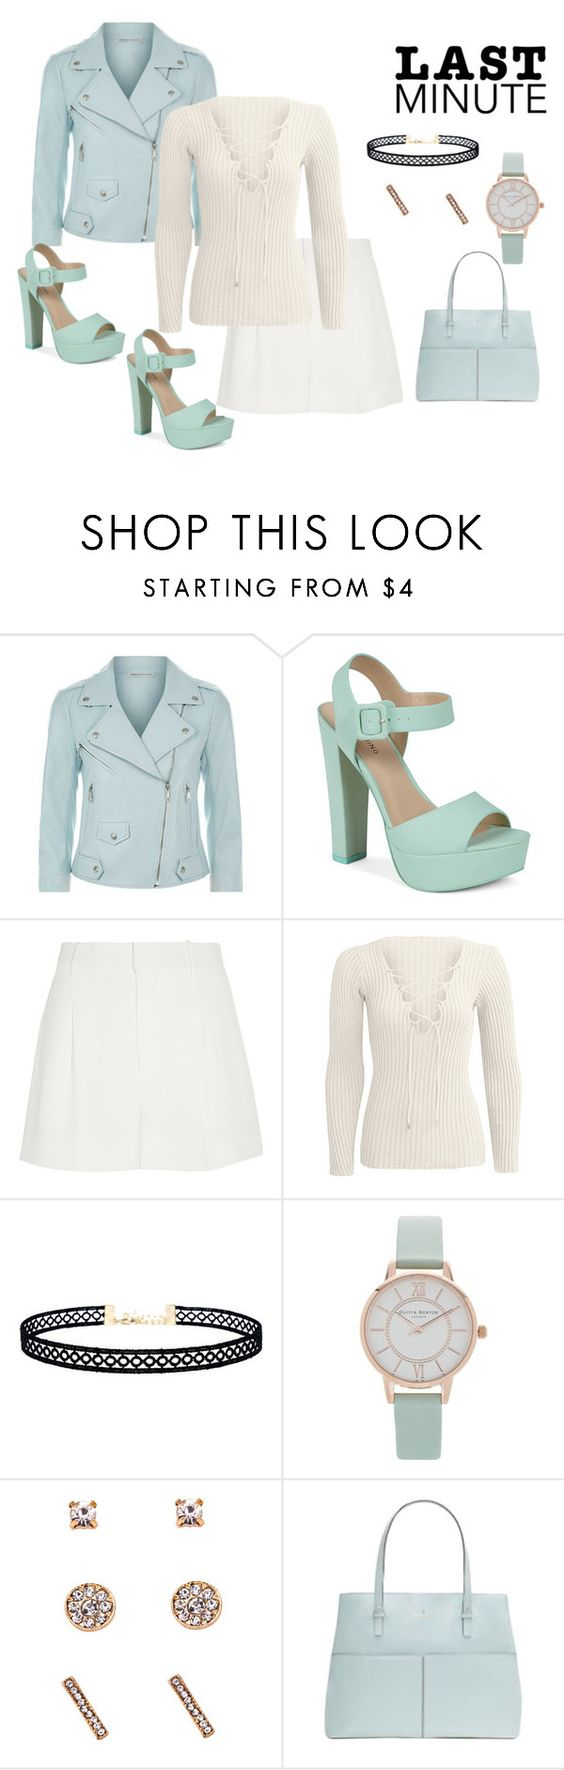 """# LAST MIN.*"" by stitch51 ❤ liked on Polyvore featuring Rebecca Minkoff, Call it SPRING, Chloé, LULUS, Olivia Burton and Kate Spade"